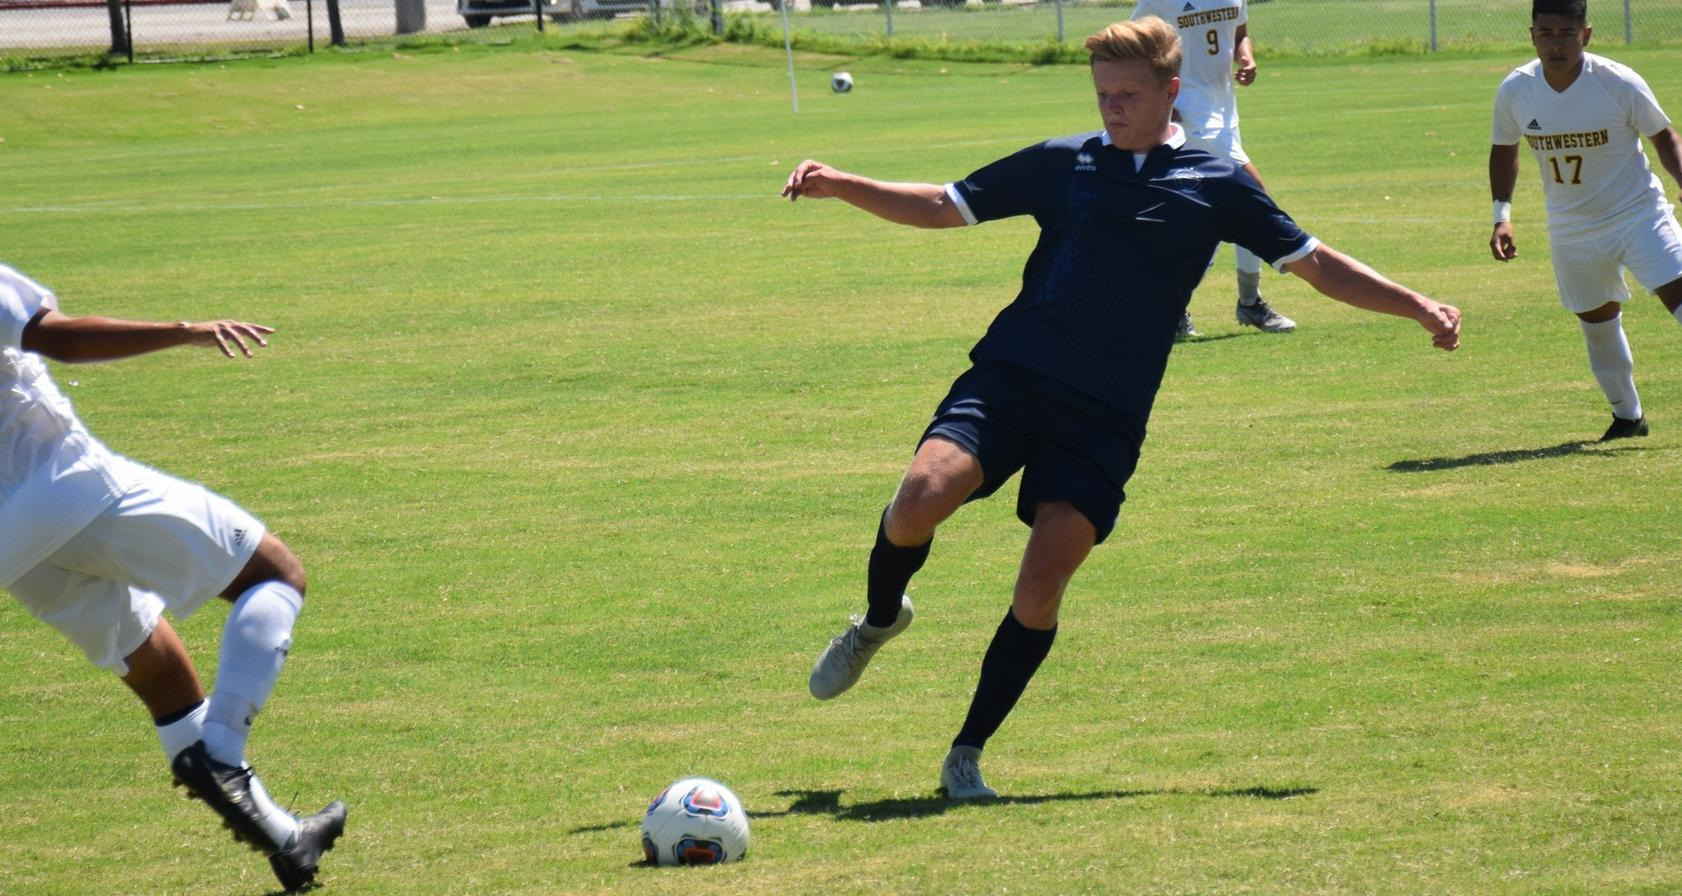 Men's soccer team wins fourth in its last five, shuts out Norco